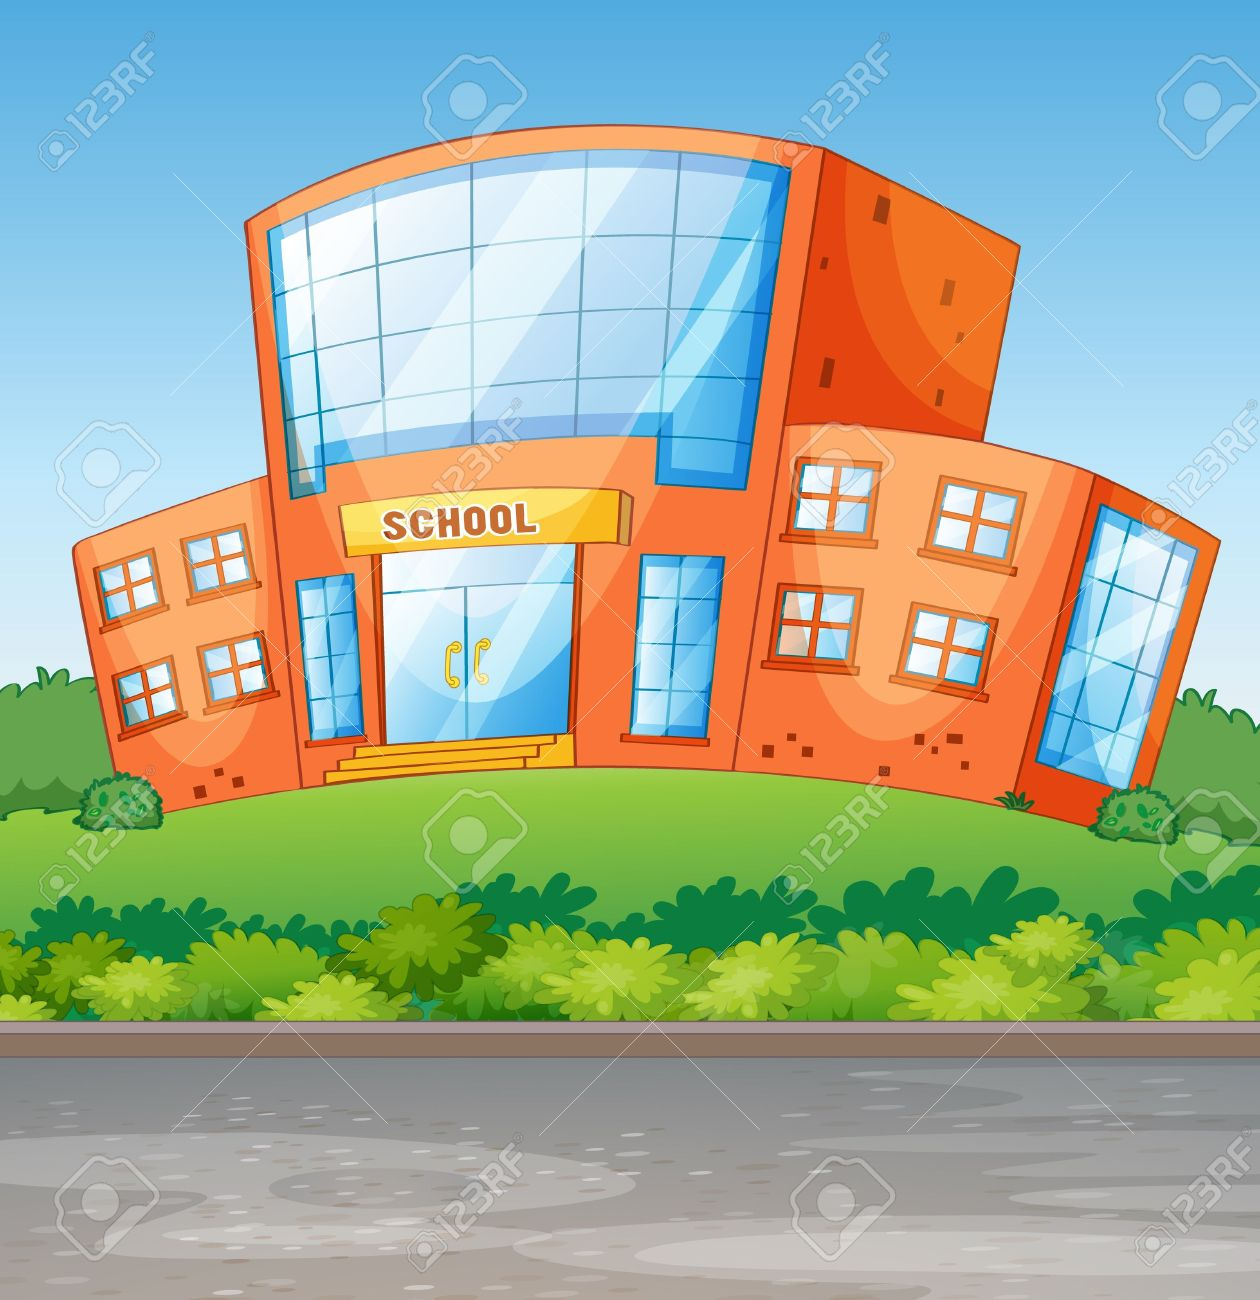 Illustration Of A School Building In A Beautiful Nature Royalty.